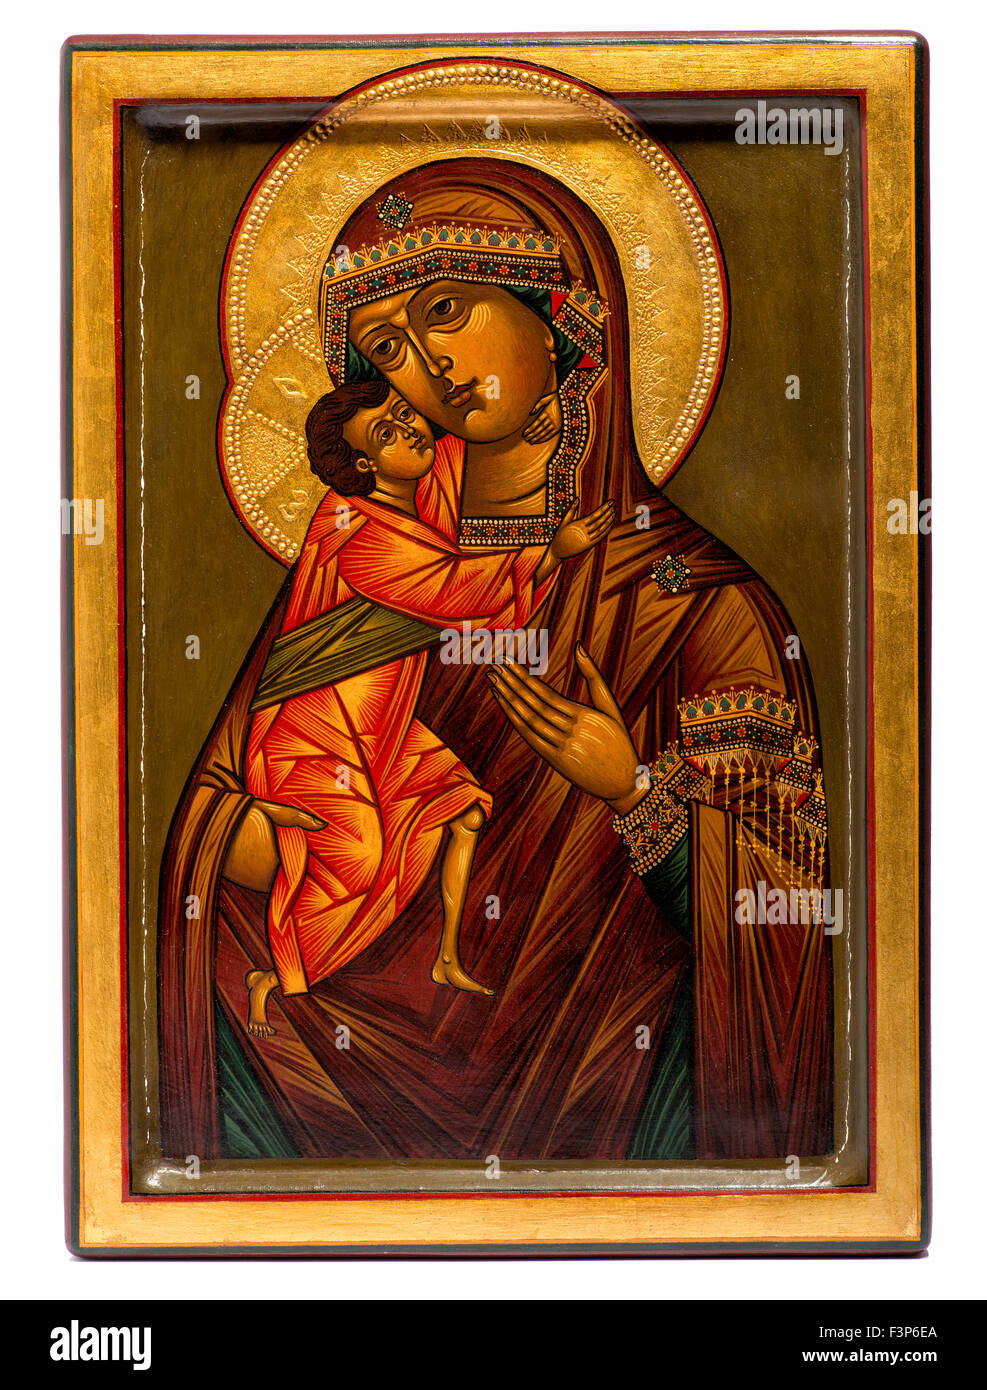 Wooden painted religious Christian icon of the Virgin Mary and Jesus - Stock Image